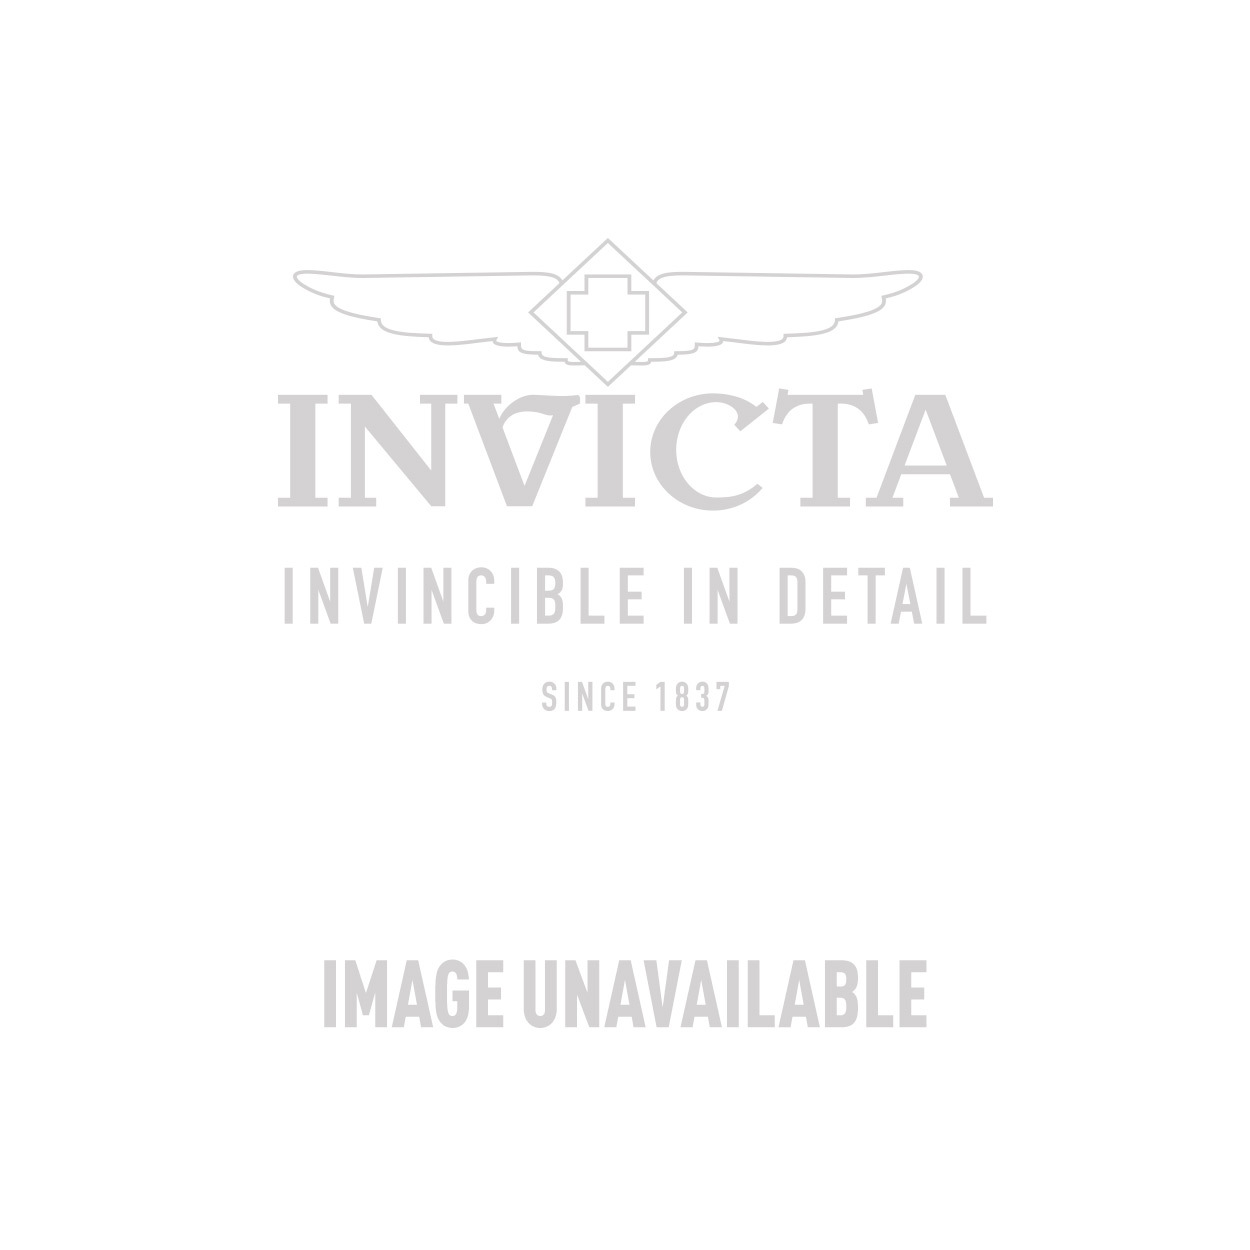 Invicta Venom Swiss Made Quartz Watch - Black, Stainless Steel case with Black tone Silicone band - Model 90151